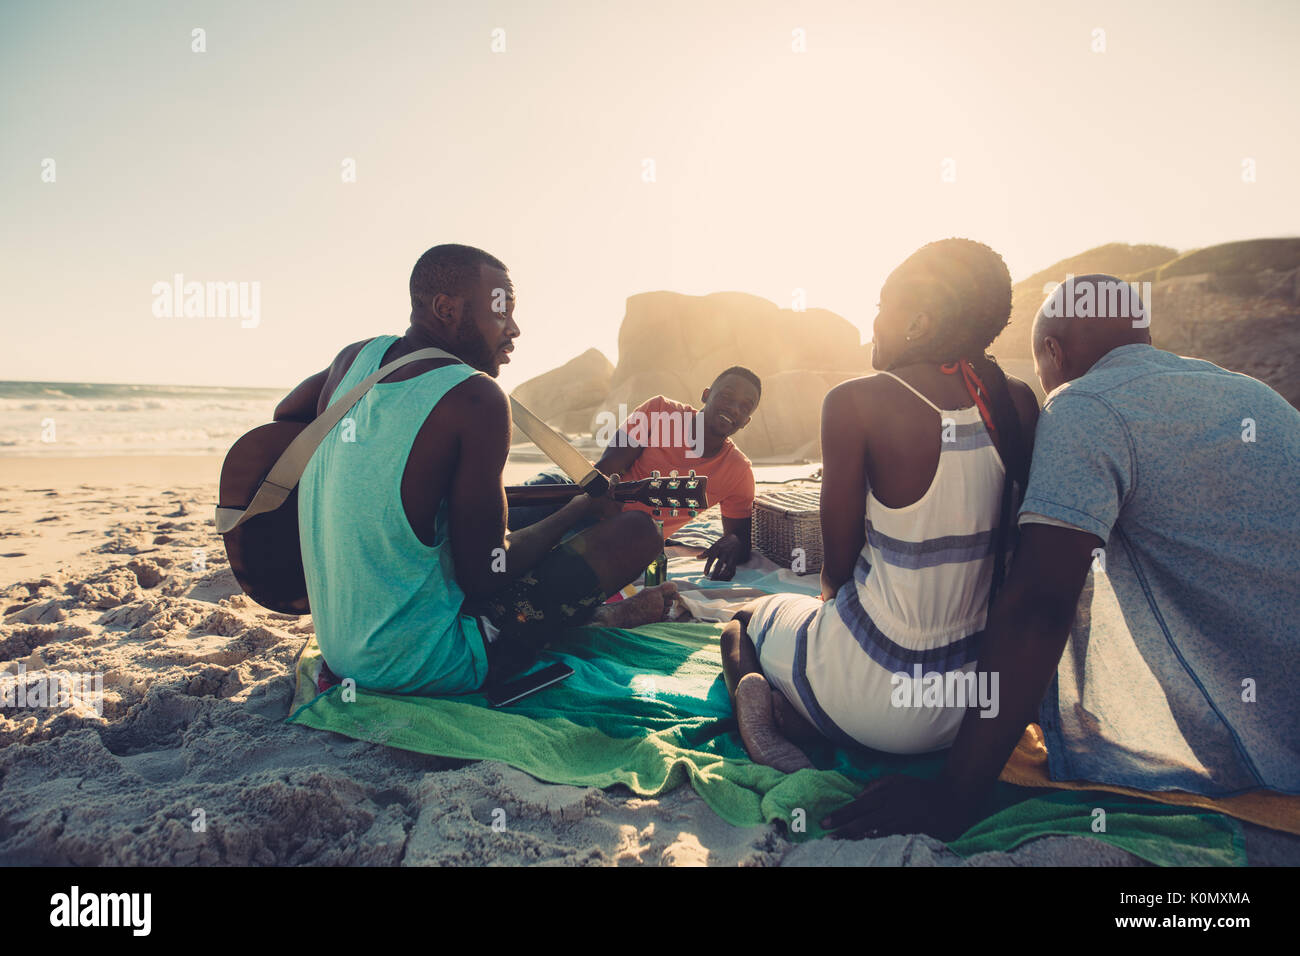 Afro american man playing guitar on the beach with friends sitting around. People on beach enjoying vacation. - Stock Image